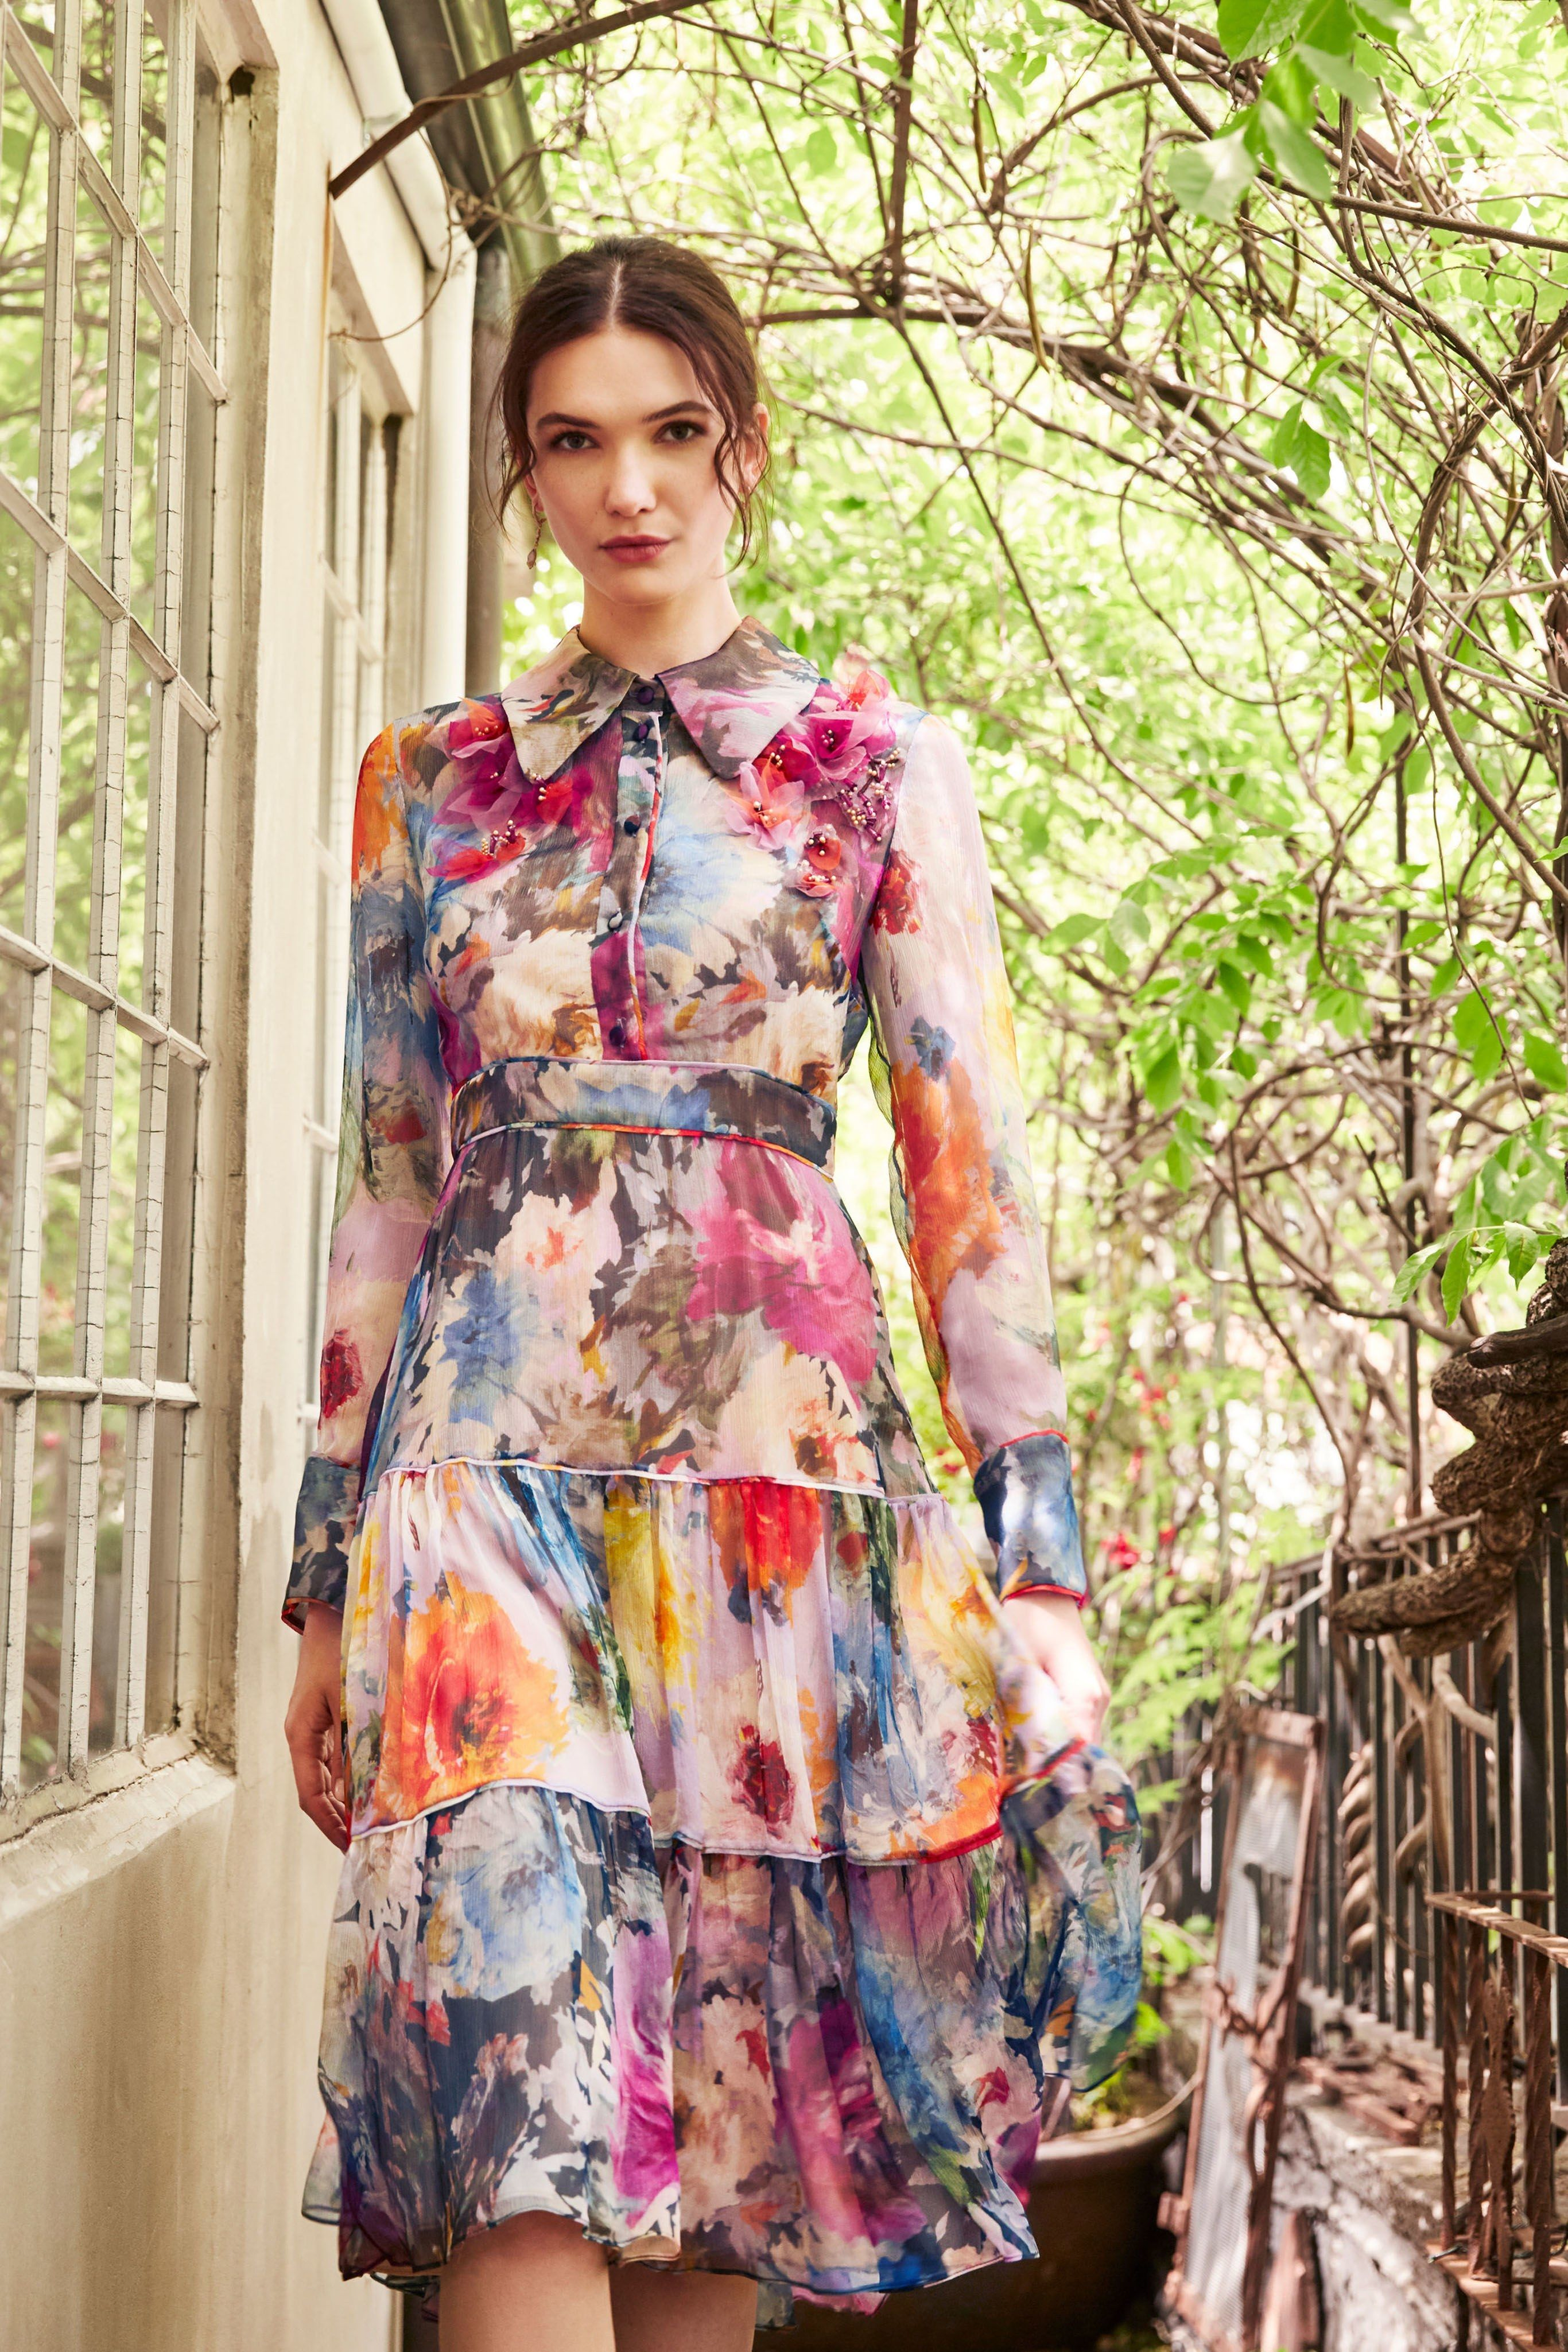 2020 Women Dress Casual Dress Print Gown Dress With Price Casual Dresses Uk